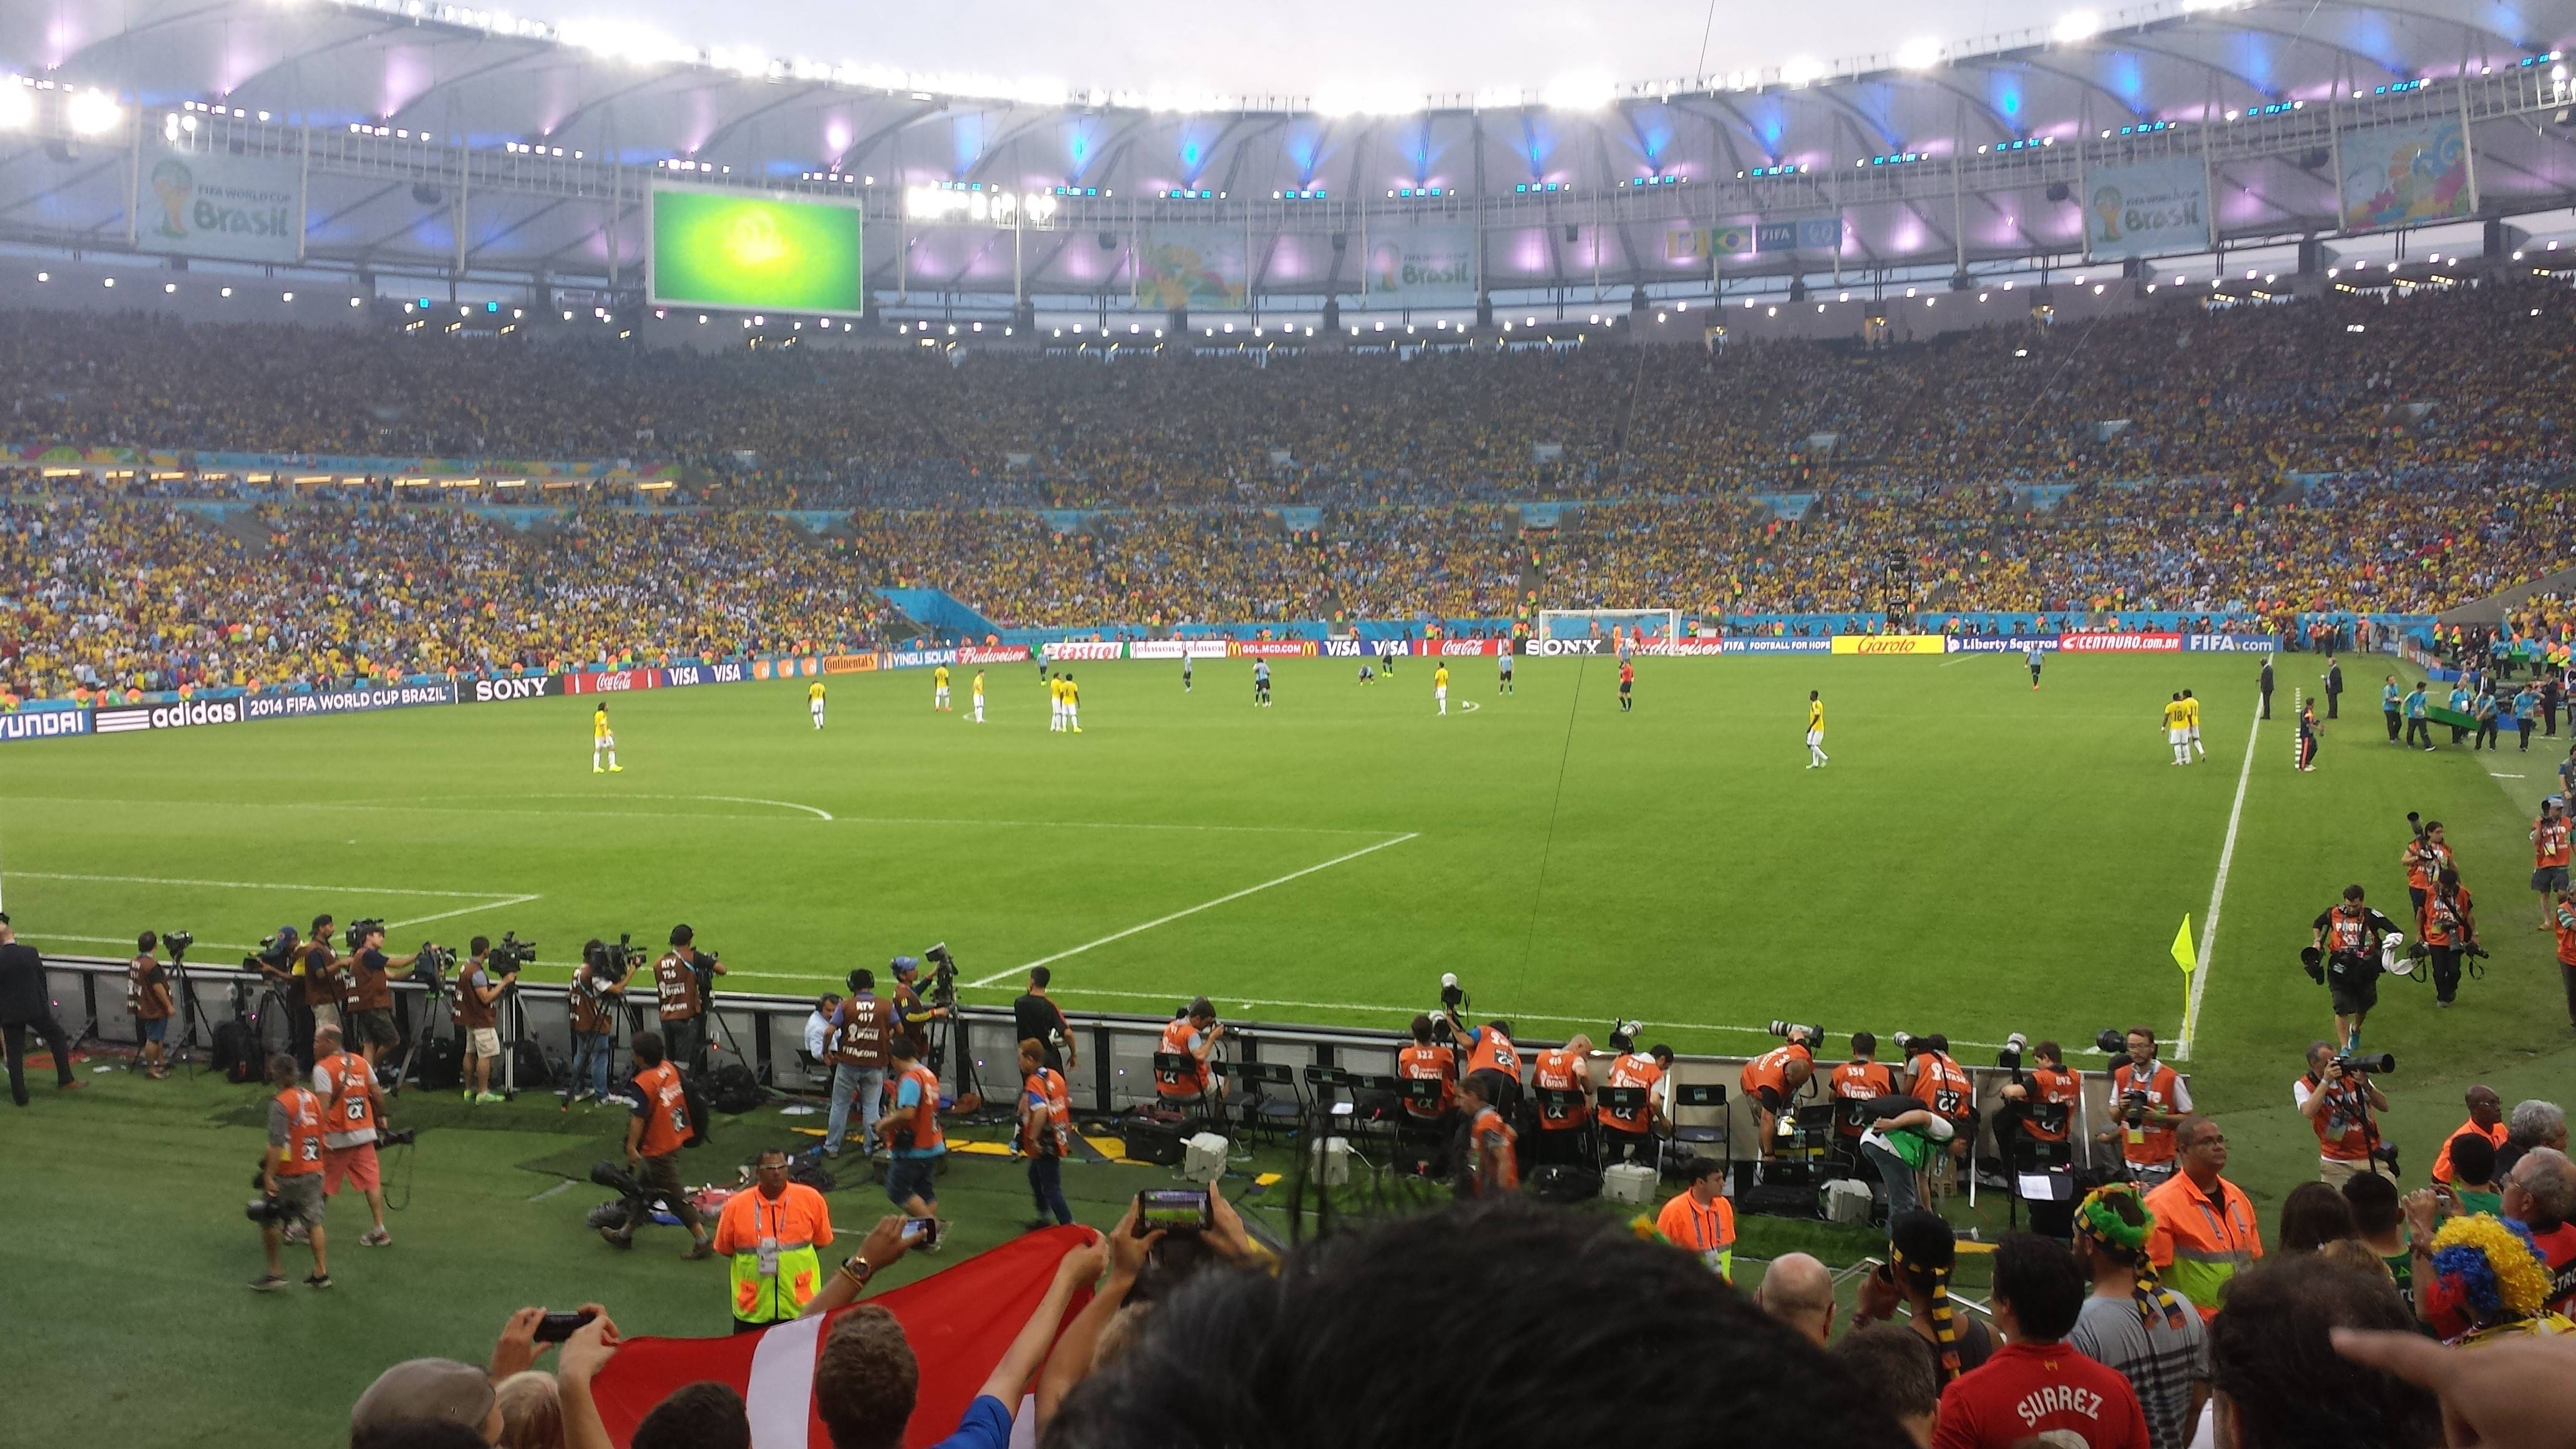 For his final World Cup experience in Brazil, Mike Taylor witnessed the game between Uruguay and Colombia.